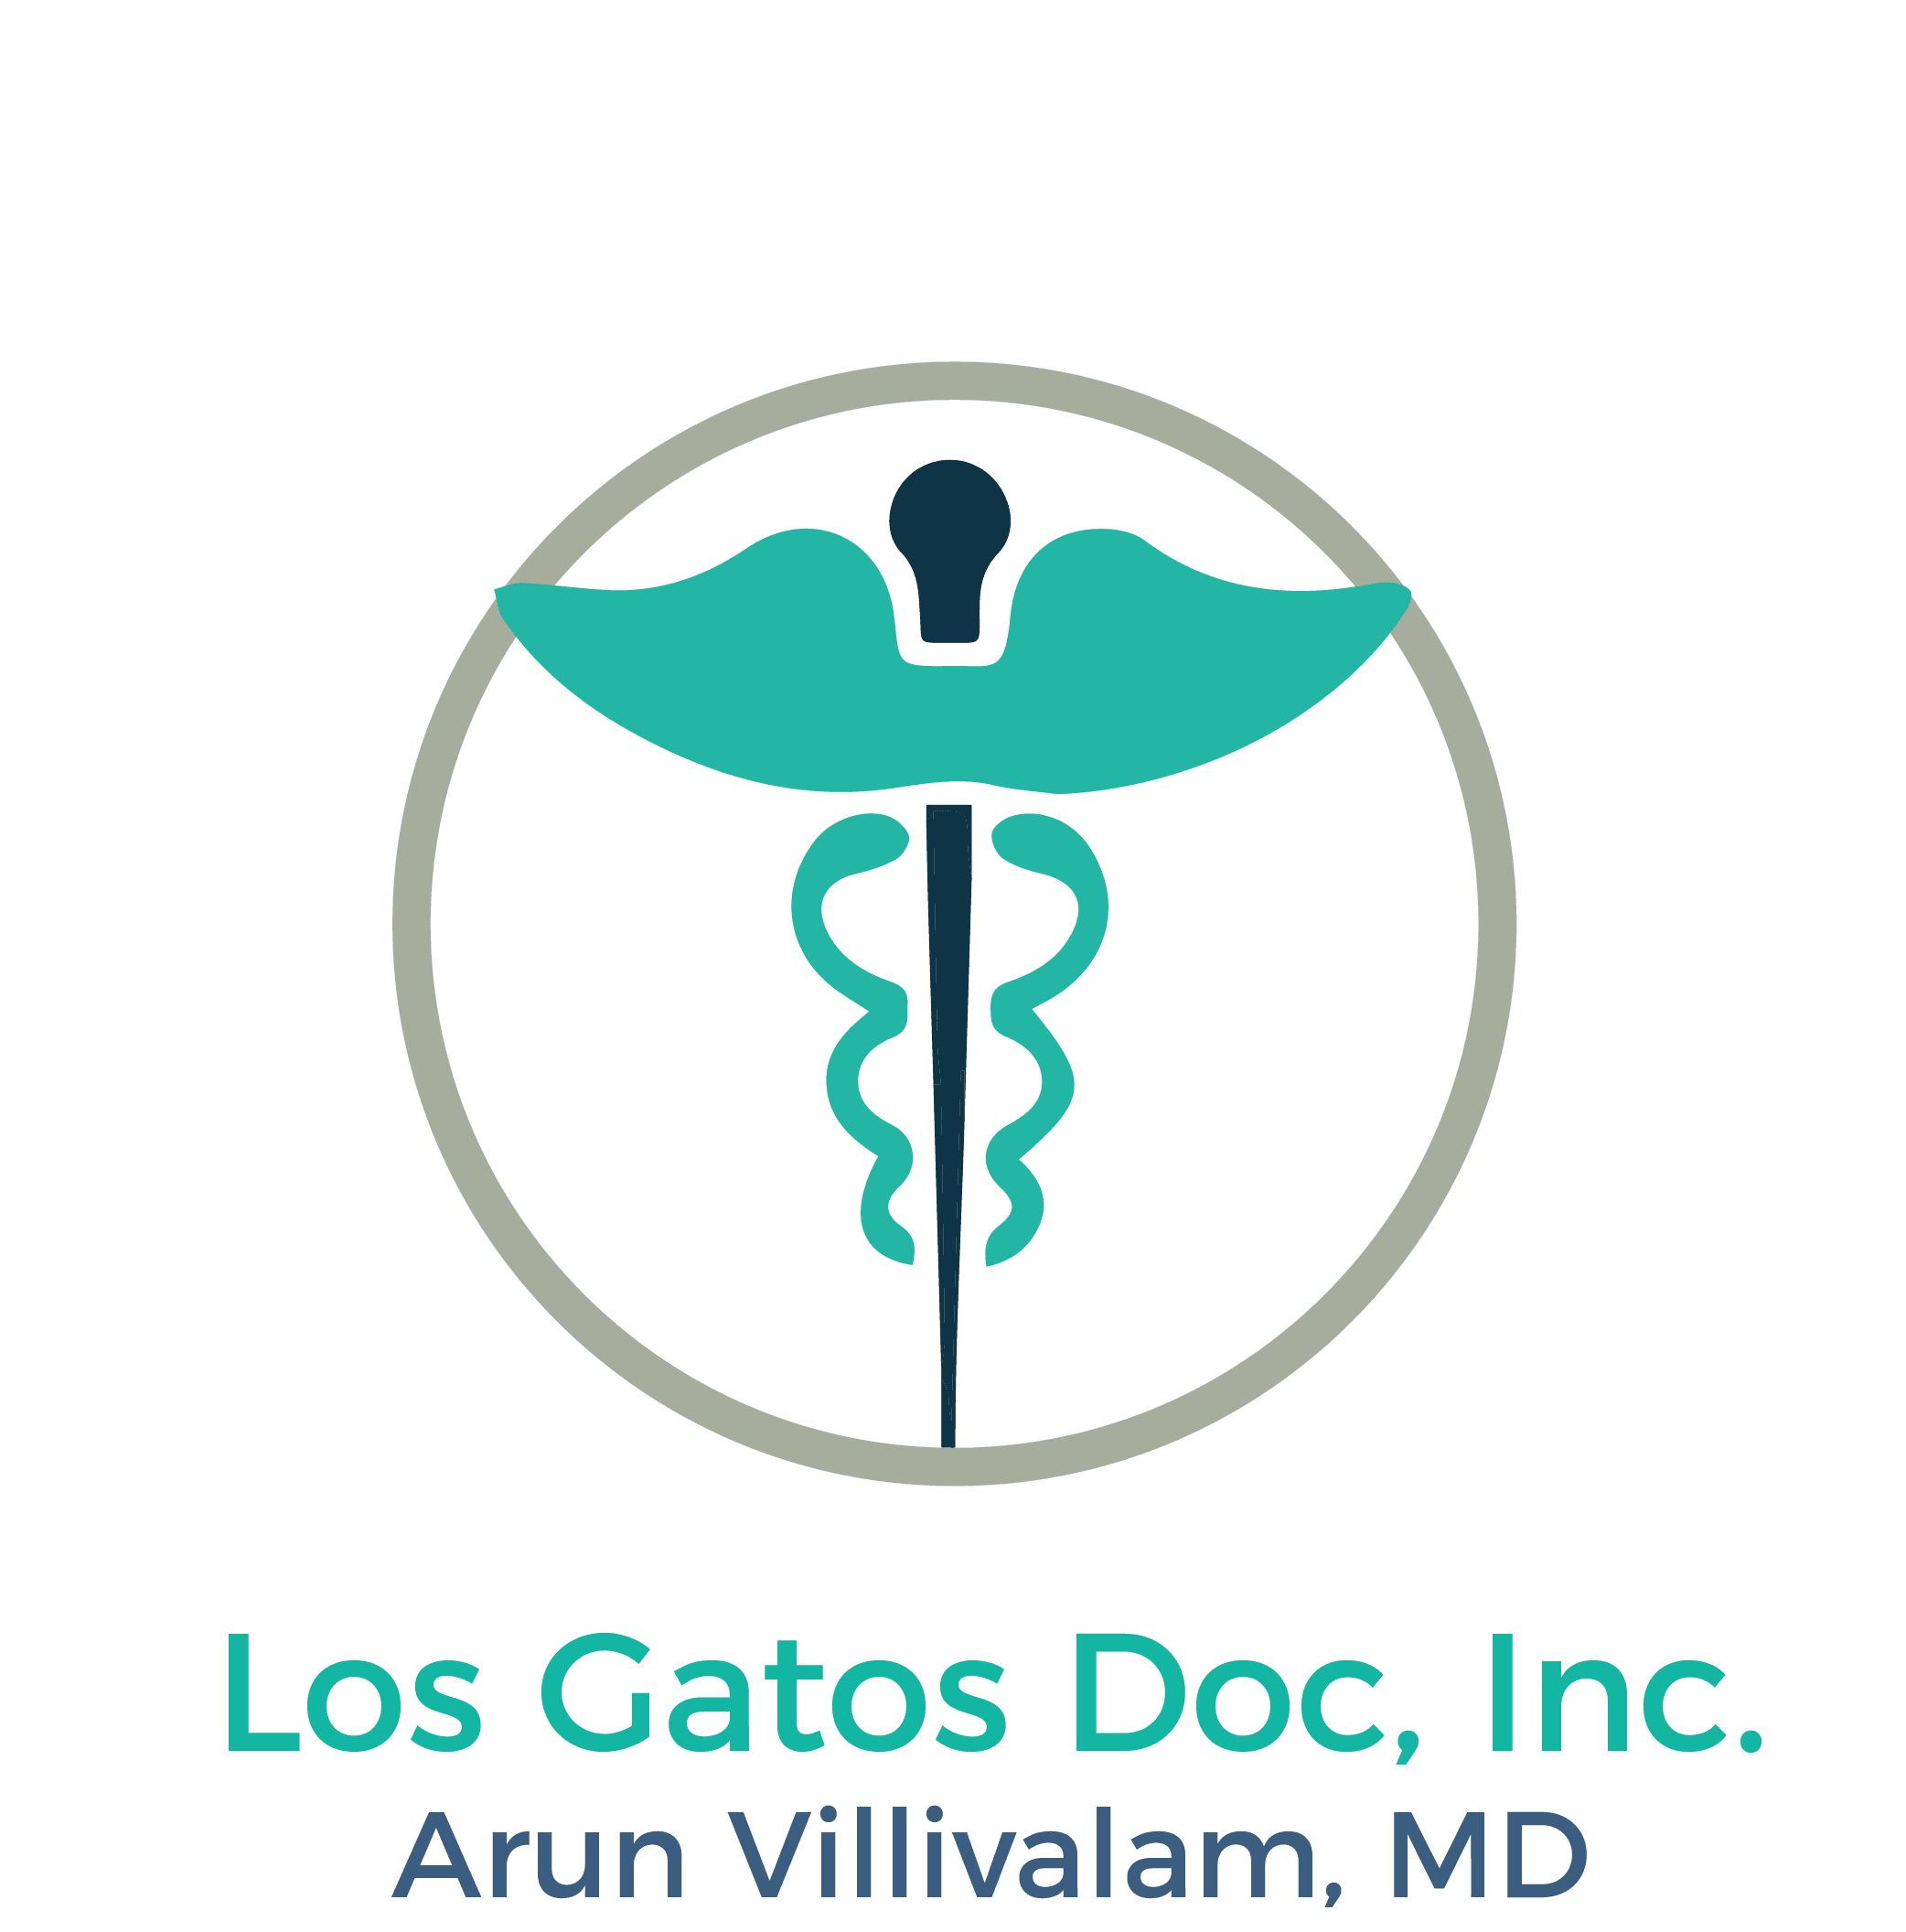 Los Gatos Doc, Inc.